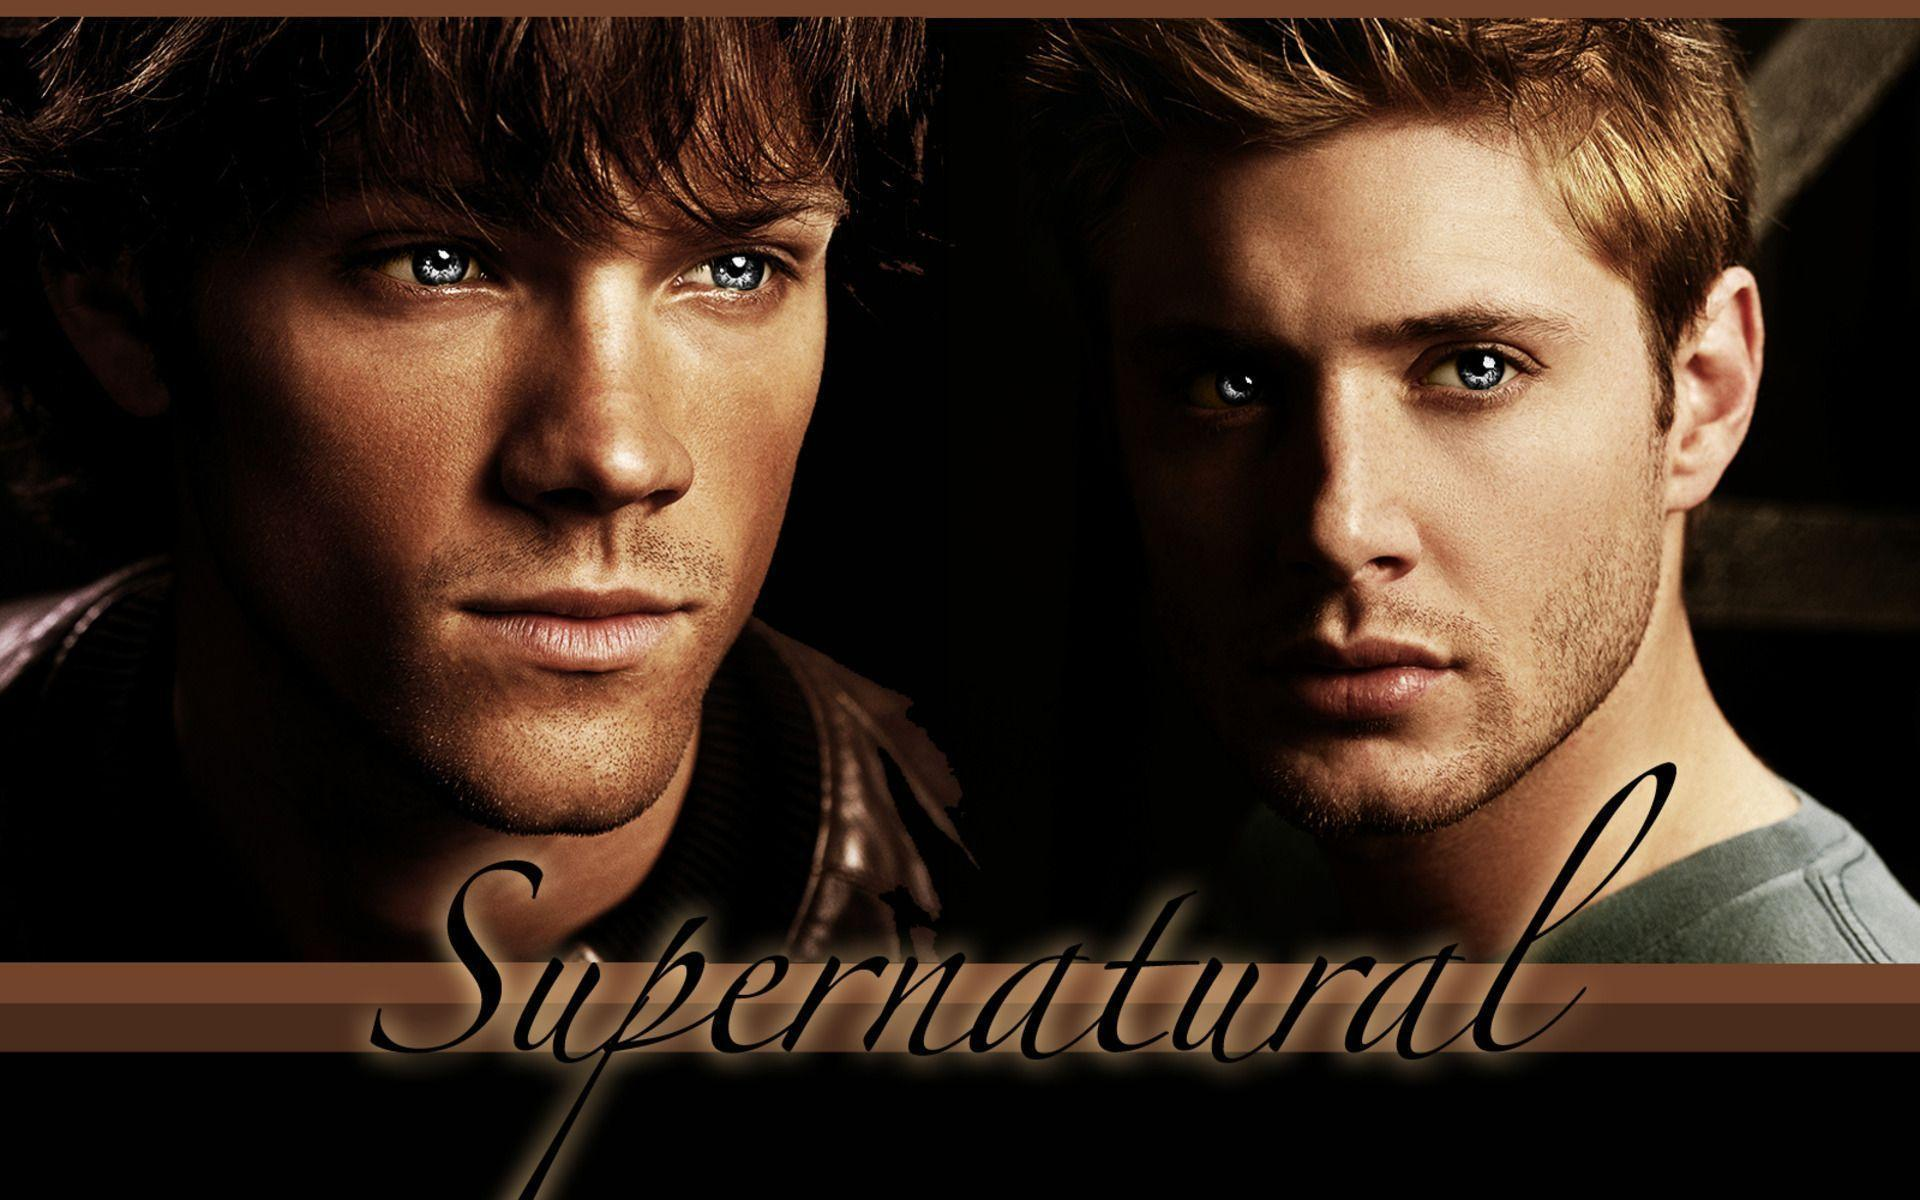 37 Supernatural Wallpapers